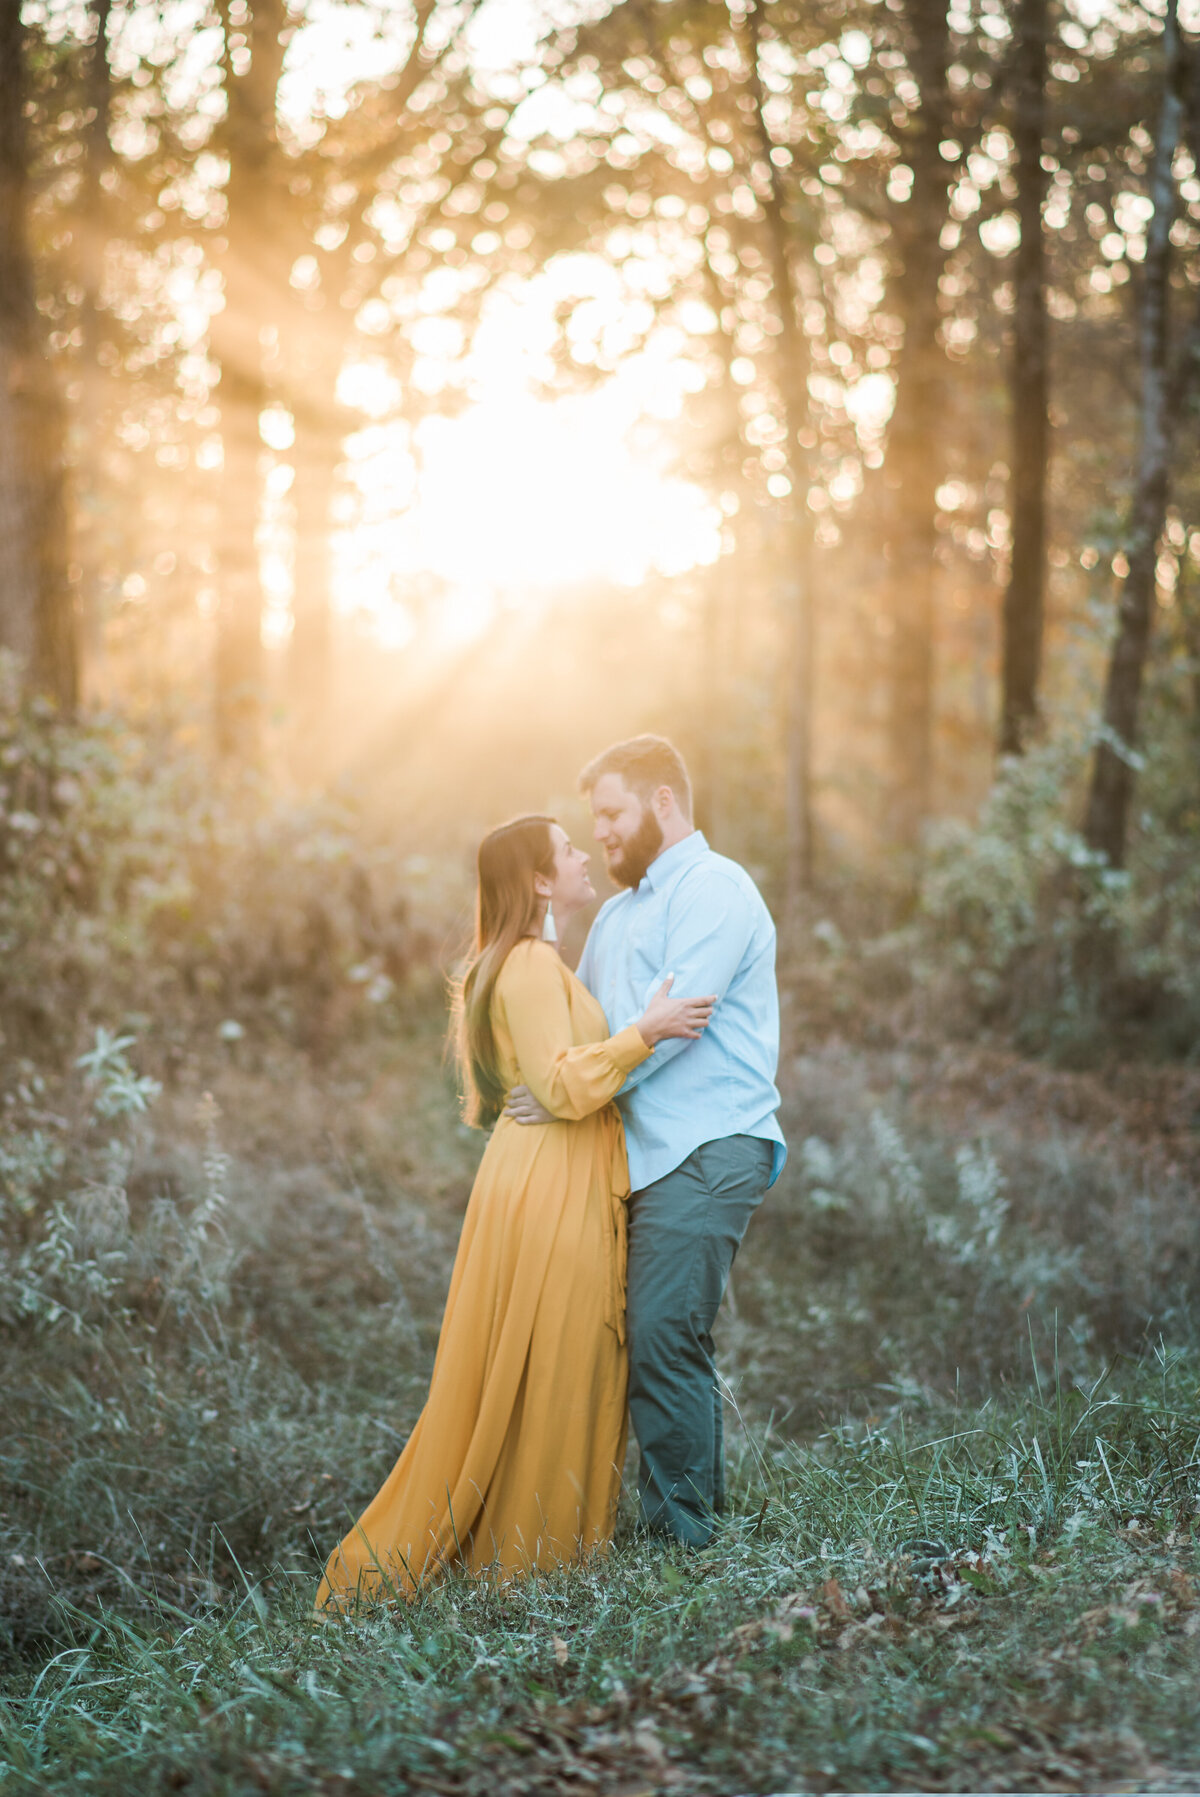 Couple at engagement session with beautiful smoky backlight